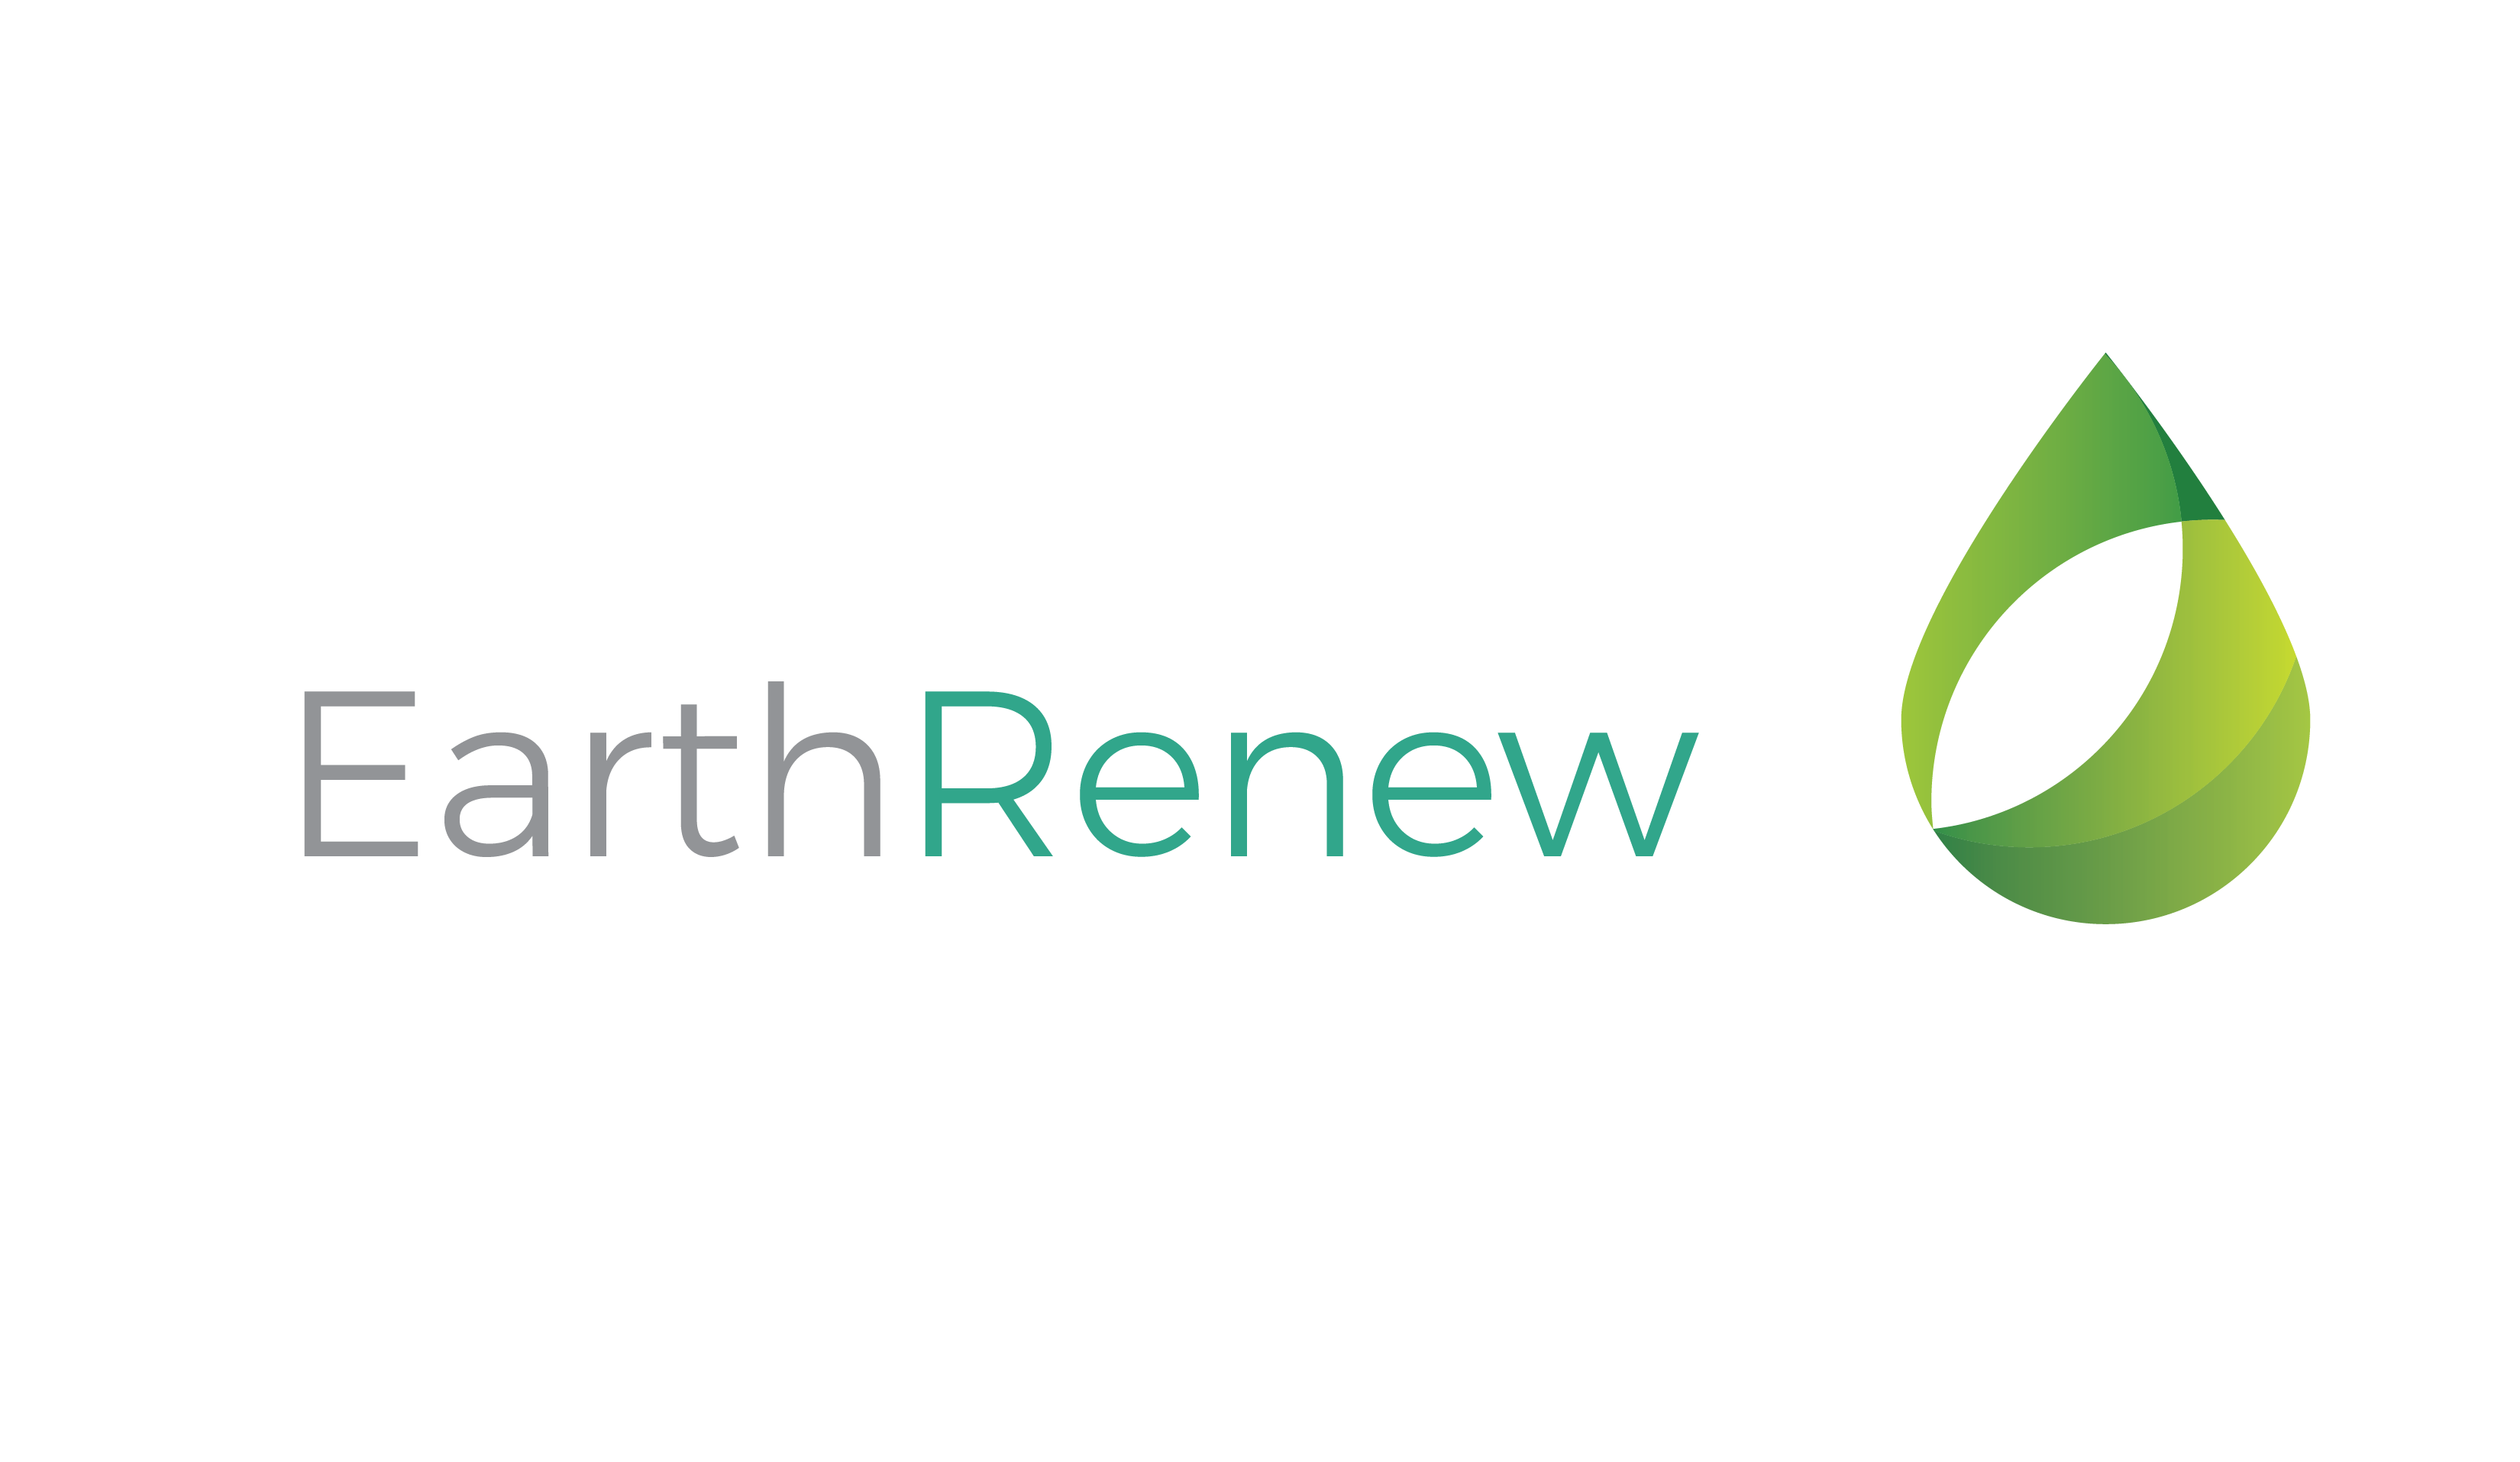 EARTHRENEW DEVELOPS NEW ORGANIC FERTILIZER FORMULATION WITH HIGHER NPK IN COLLABORATION WITH CCm TECHNOLOGIES AND LAUNCHES NEW WEBSITE